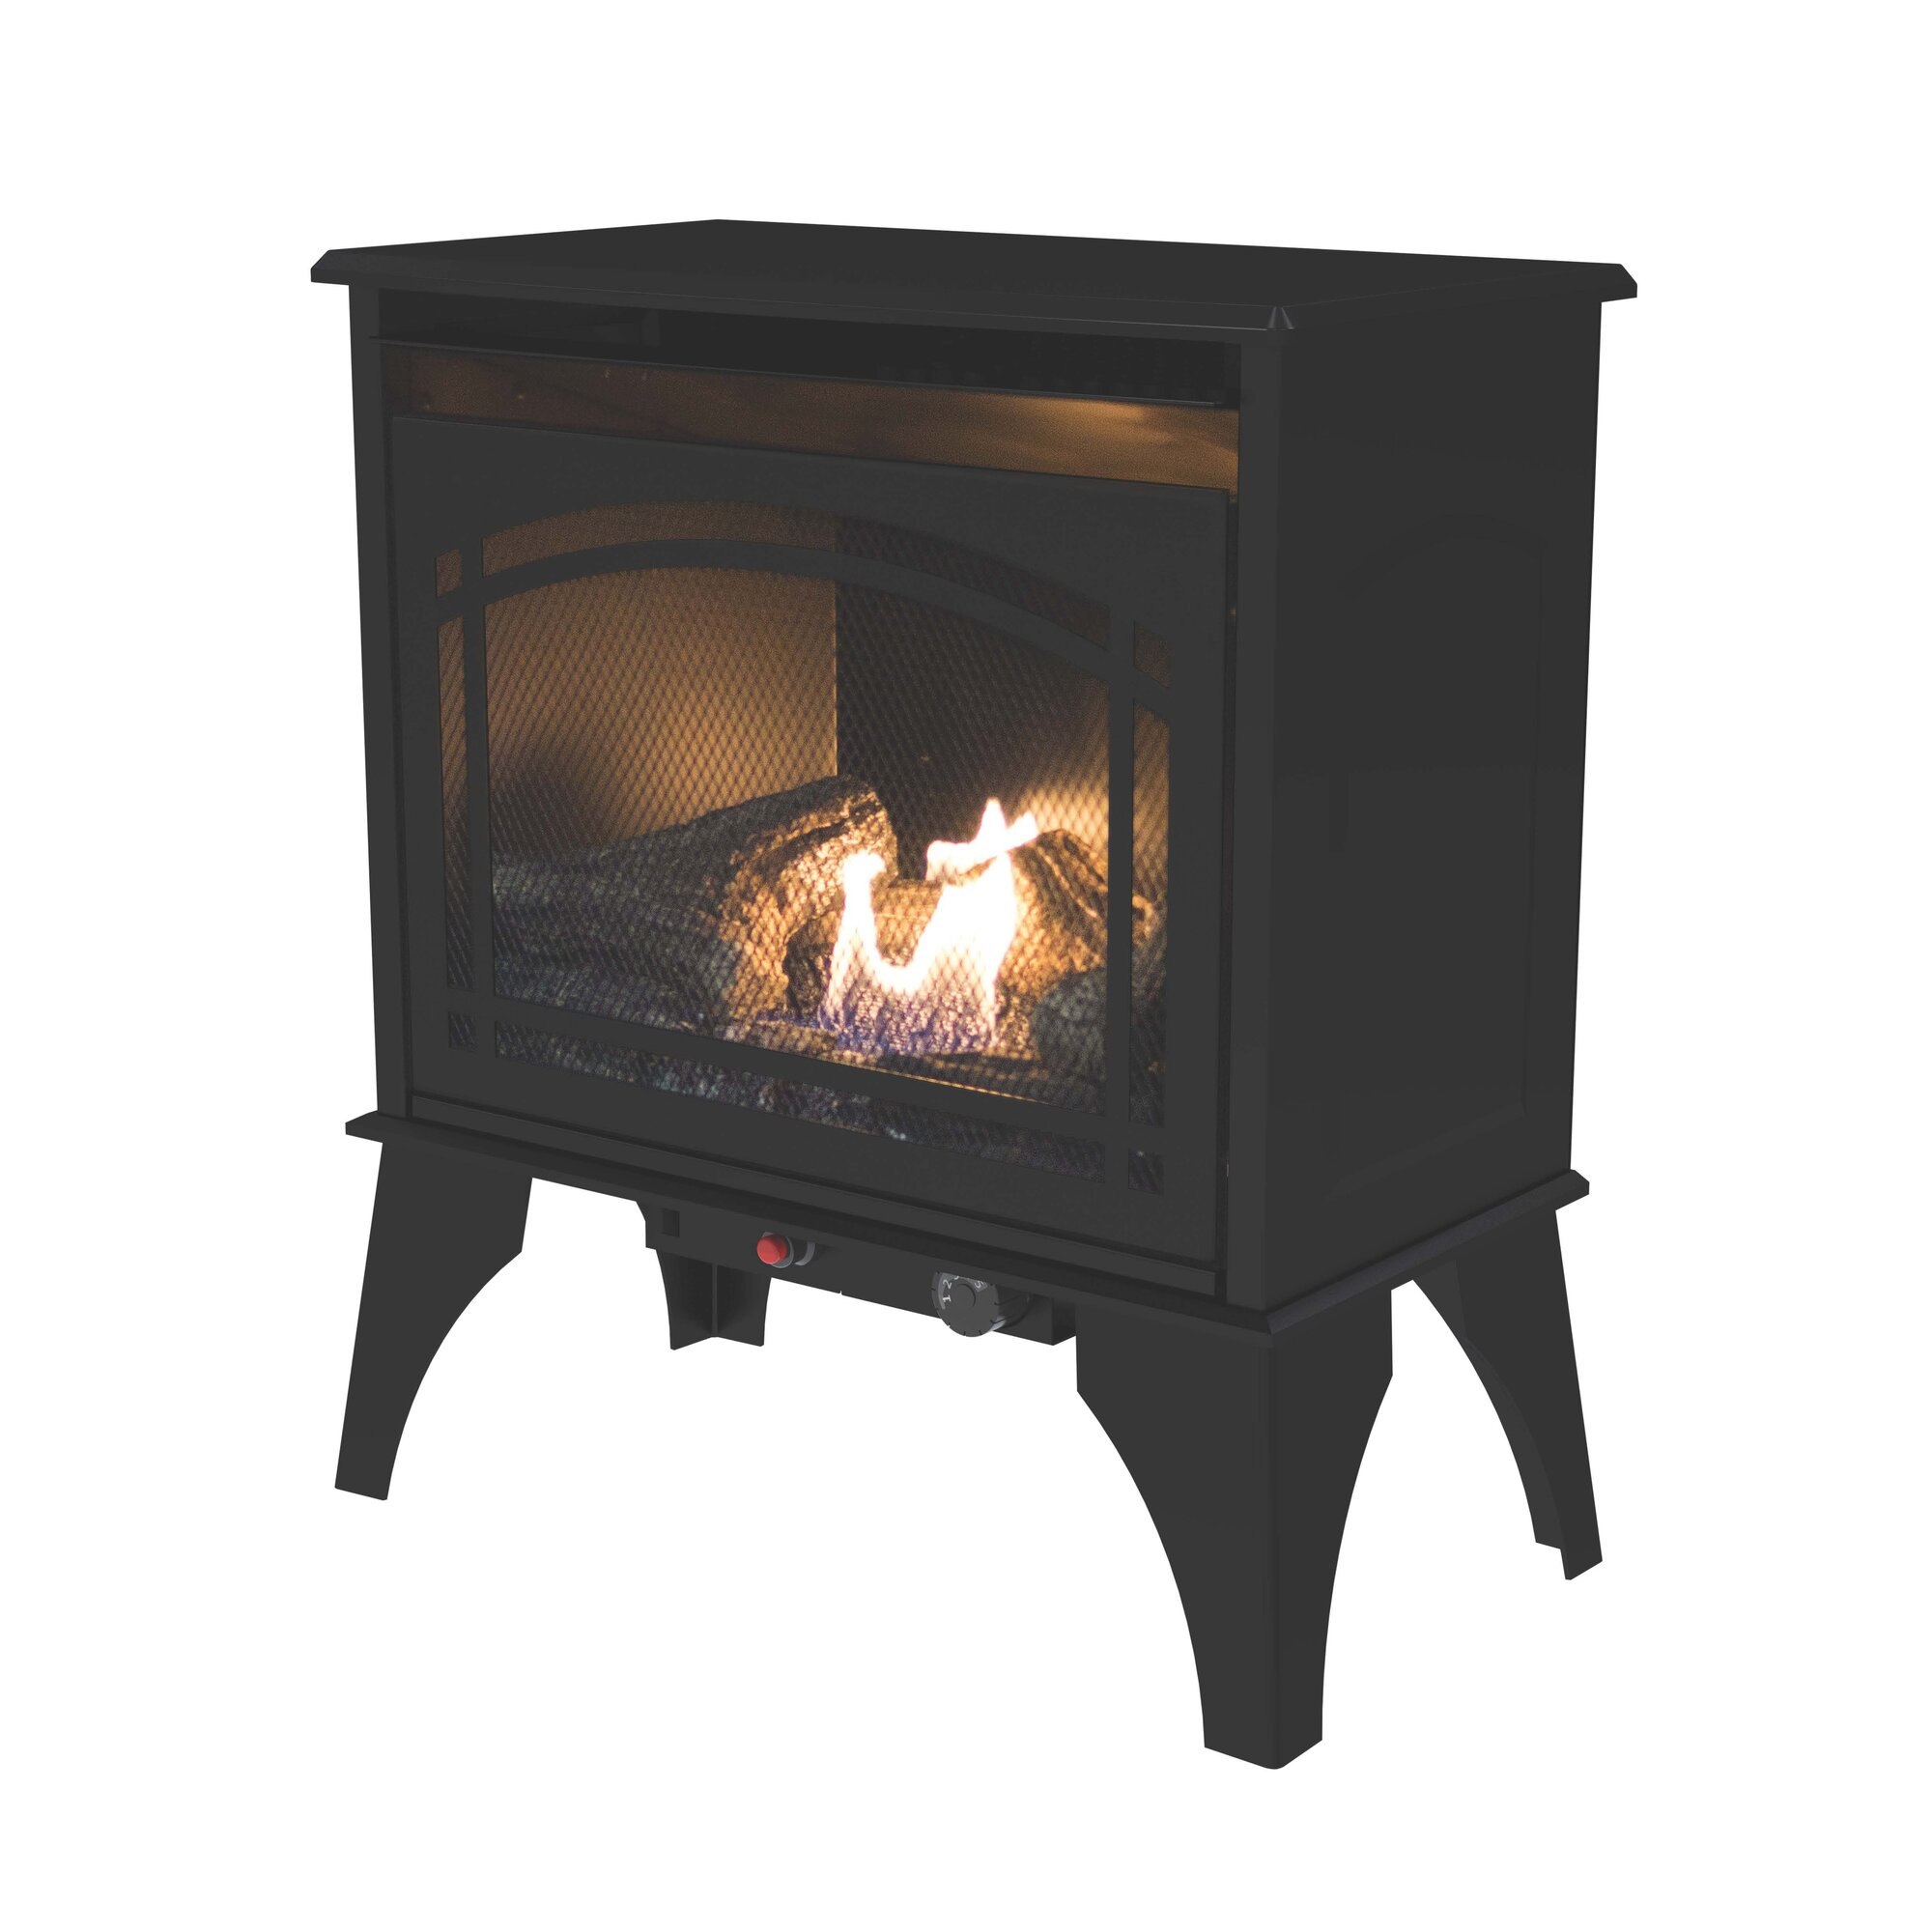 Pleasant Hearth 700 sq. ft. Vent Free Gas Stove & Reviews | Wayfair